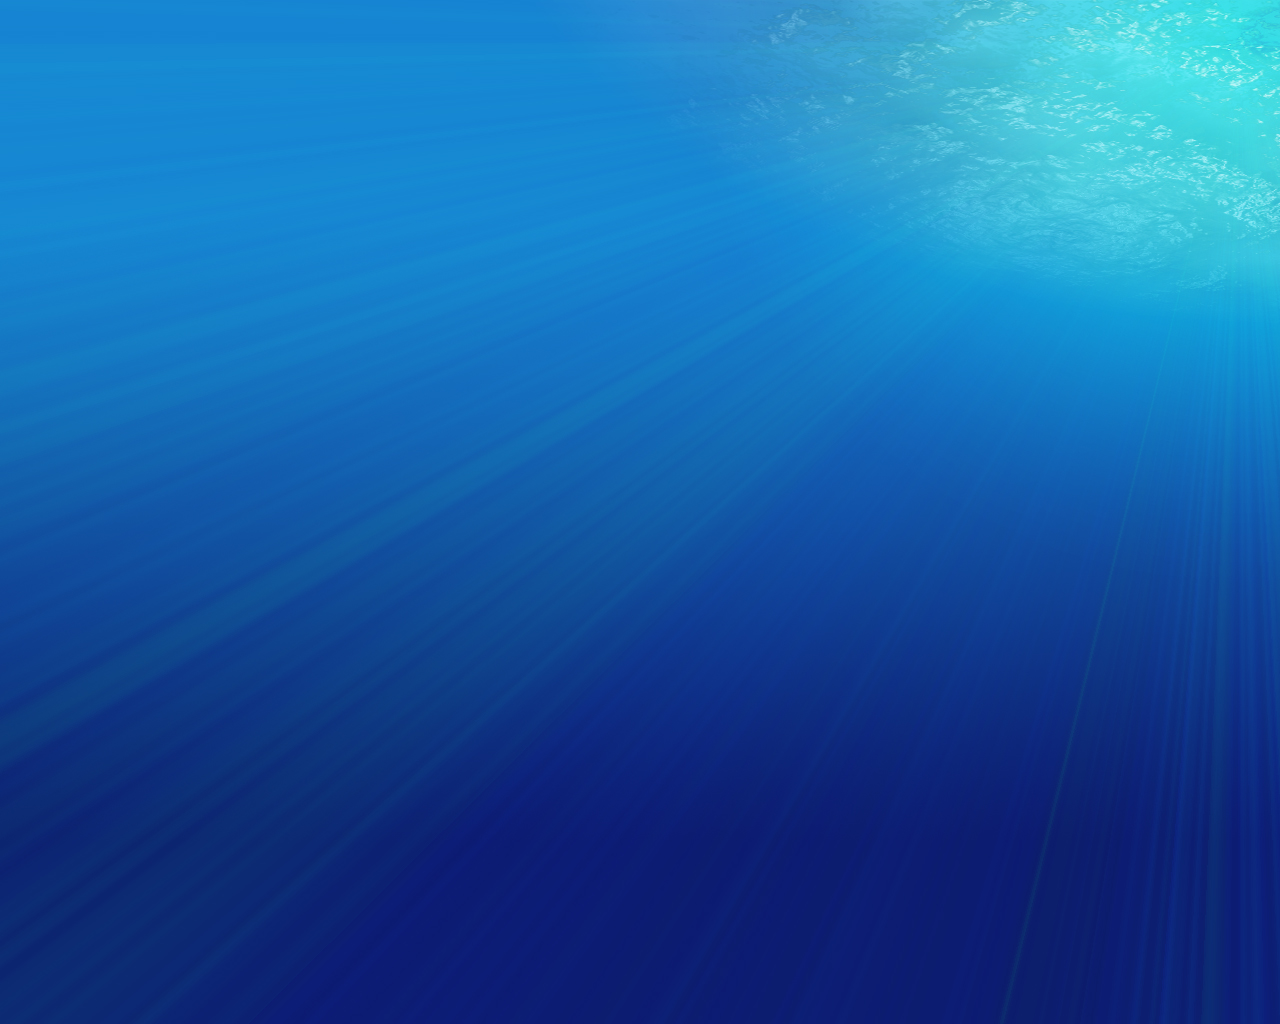 Deep Underwater Wallpaper - WallpaperSafari | 1280 x 1024 jpeg 410kB